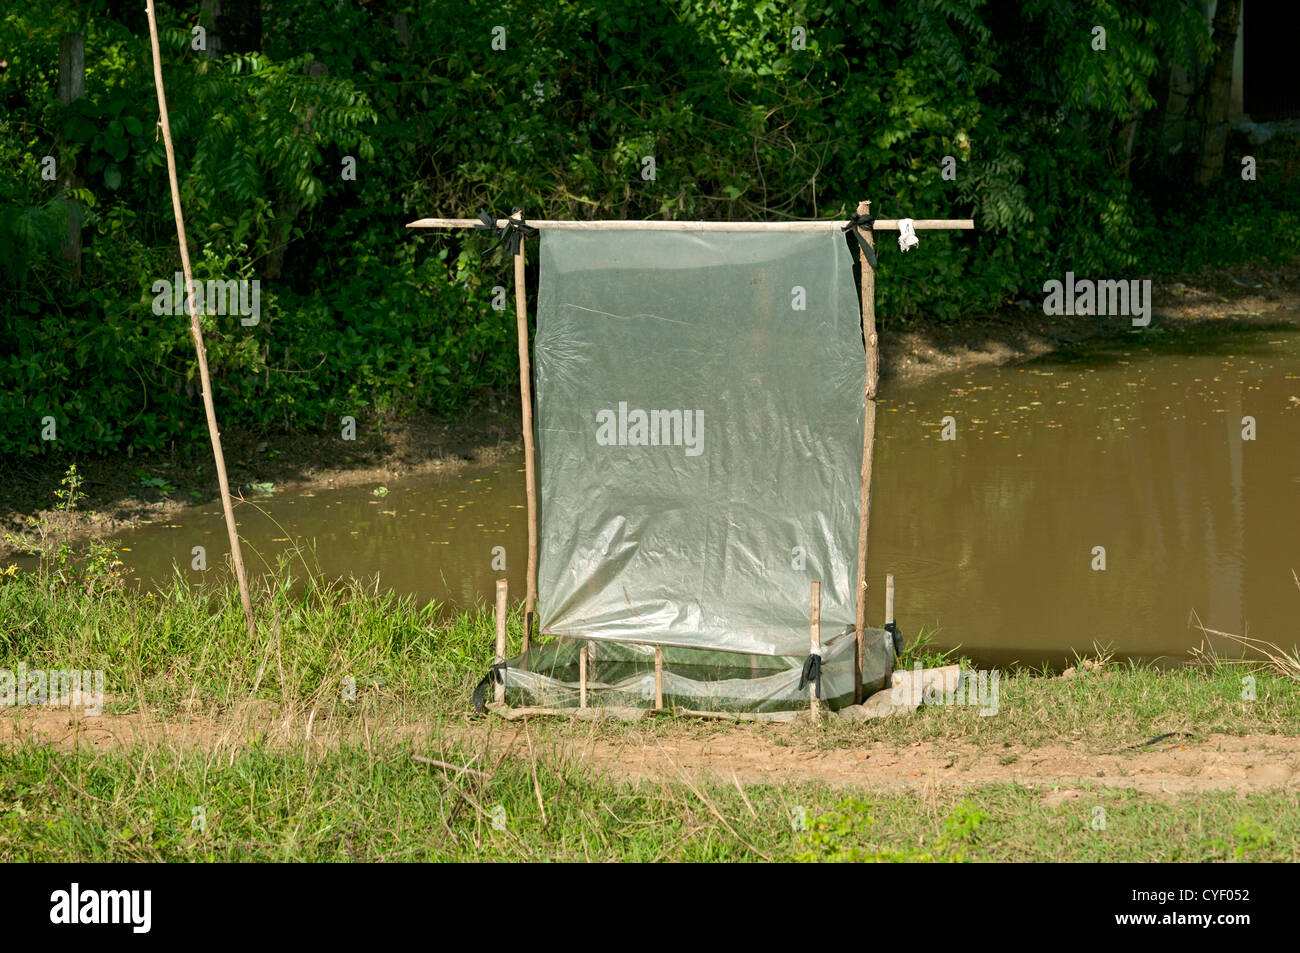 Plastic sheet as night trap for insects, which are eaten as a delicacy, Battambang, Cambodia - Stock Image